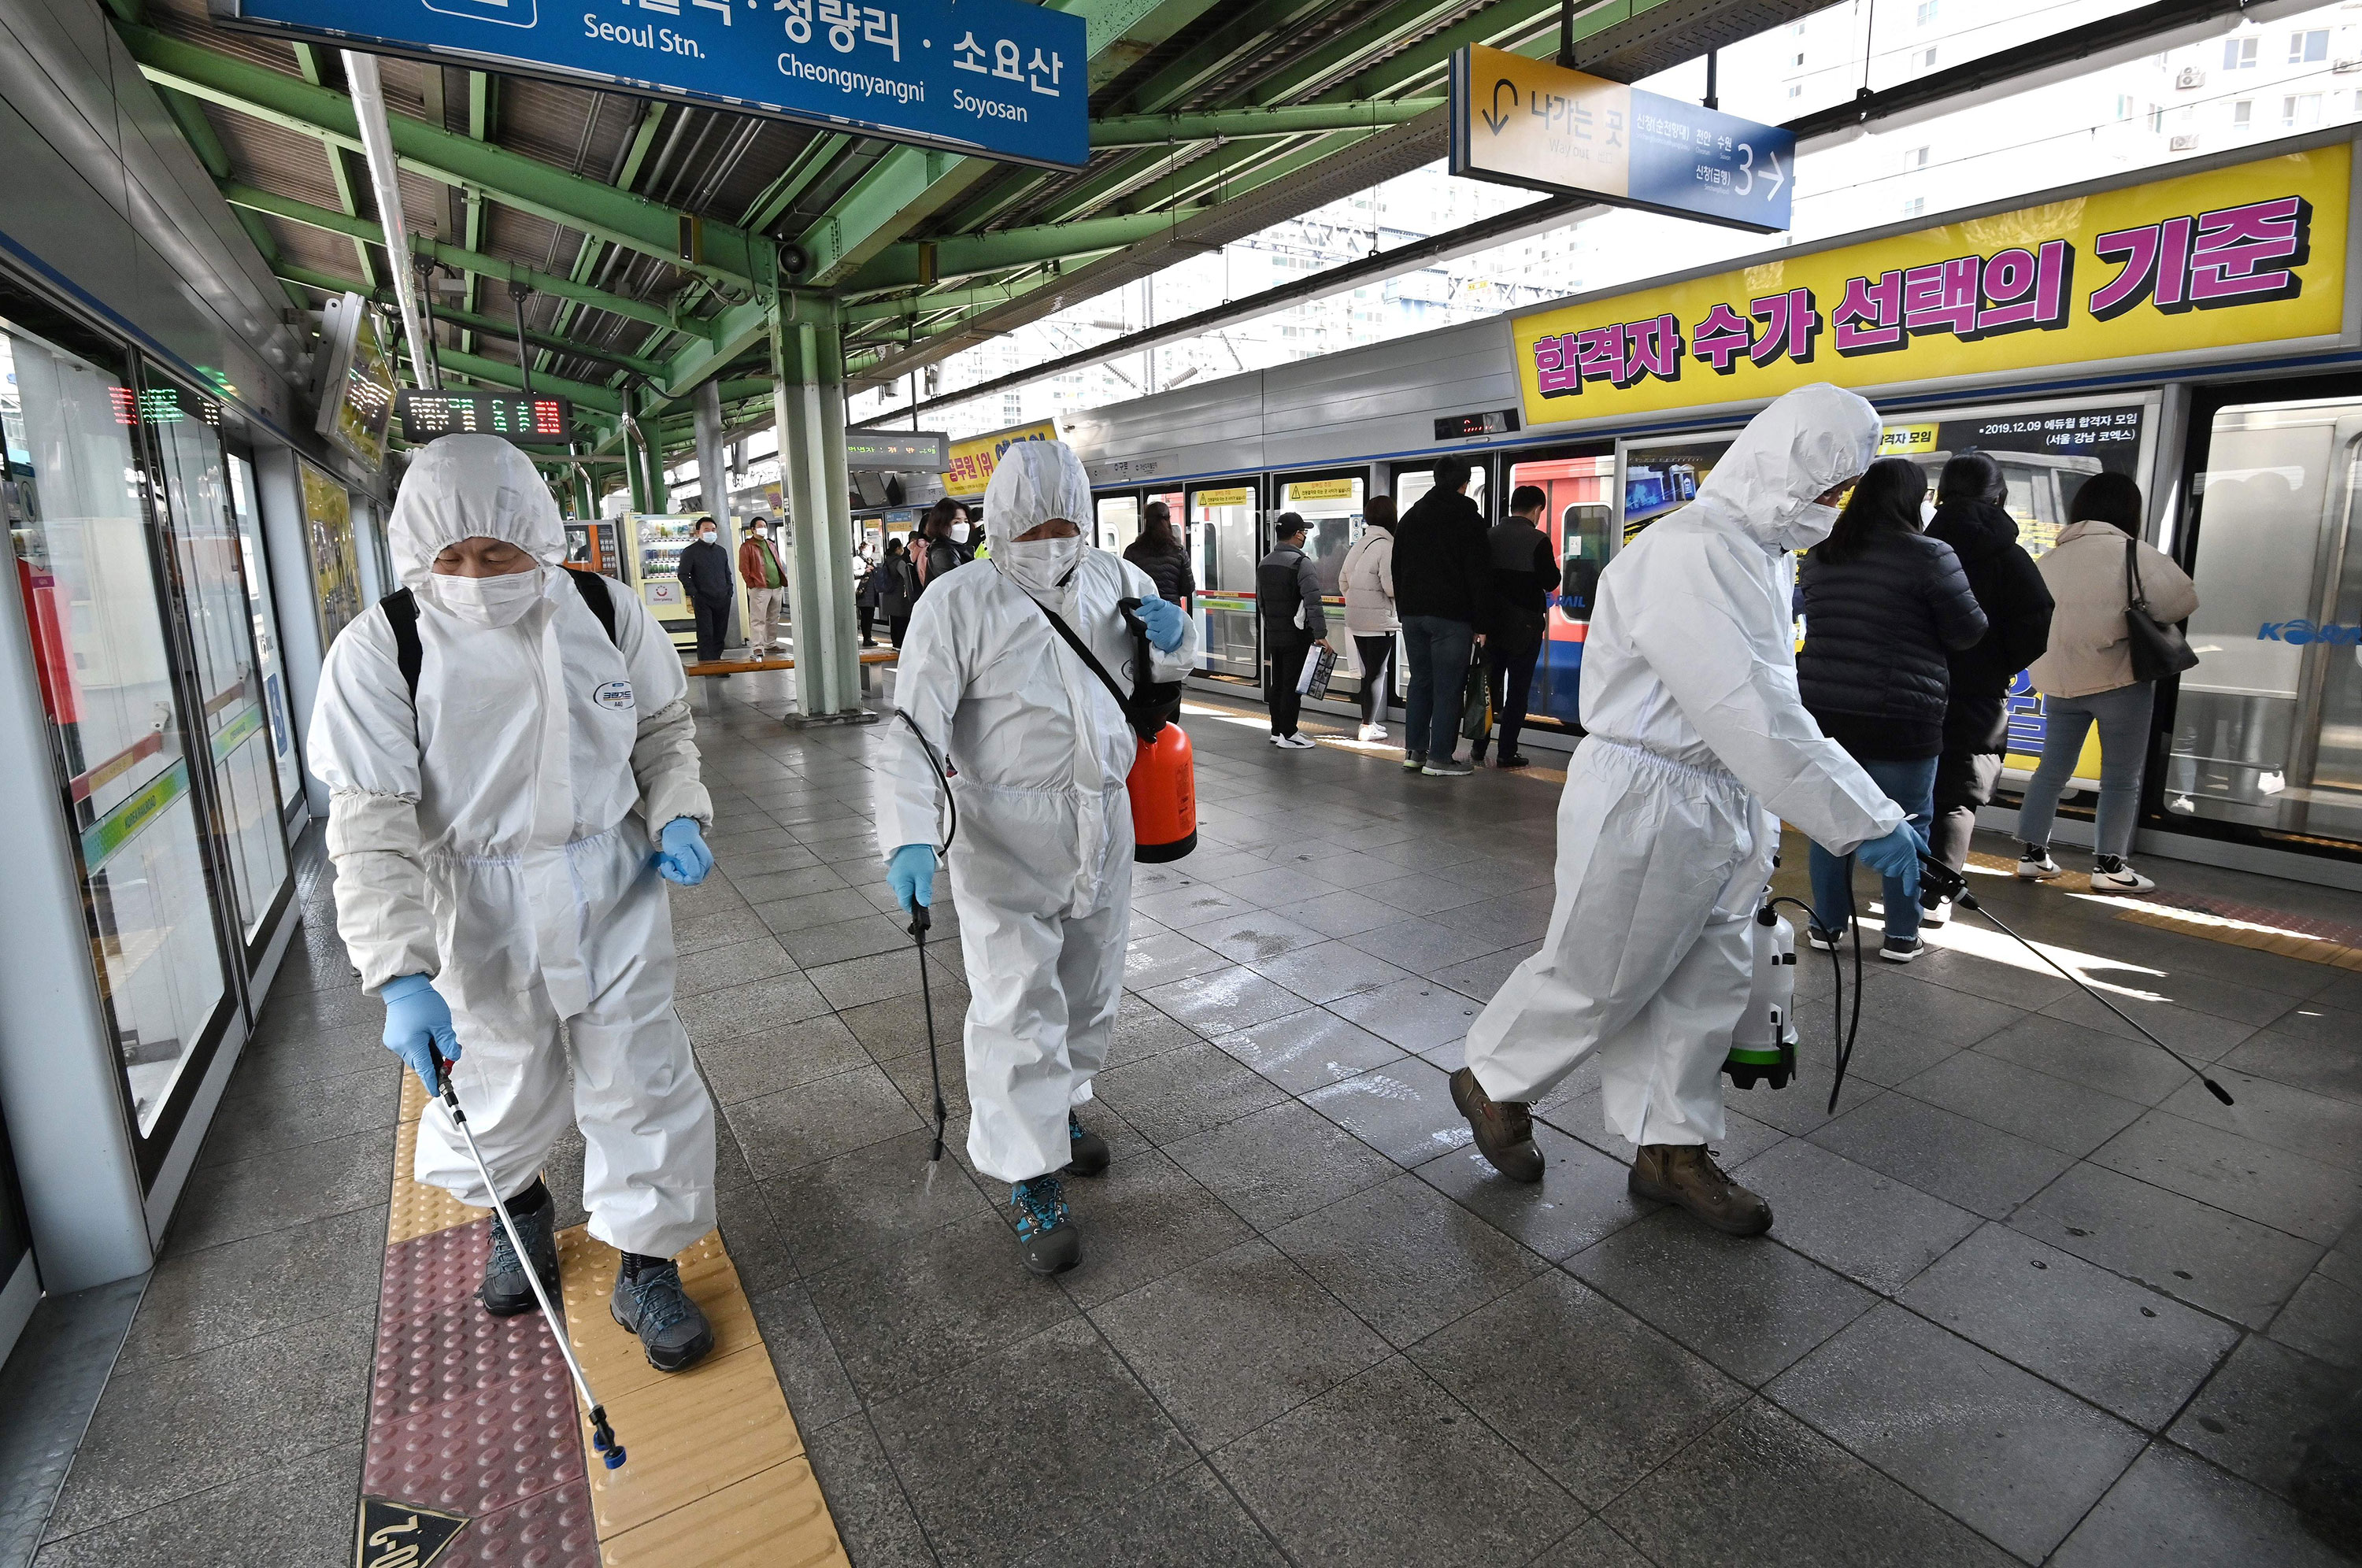 Workers spray disinfectant at a subway station in Seoul on March 13.